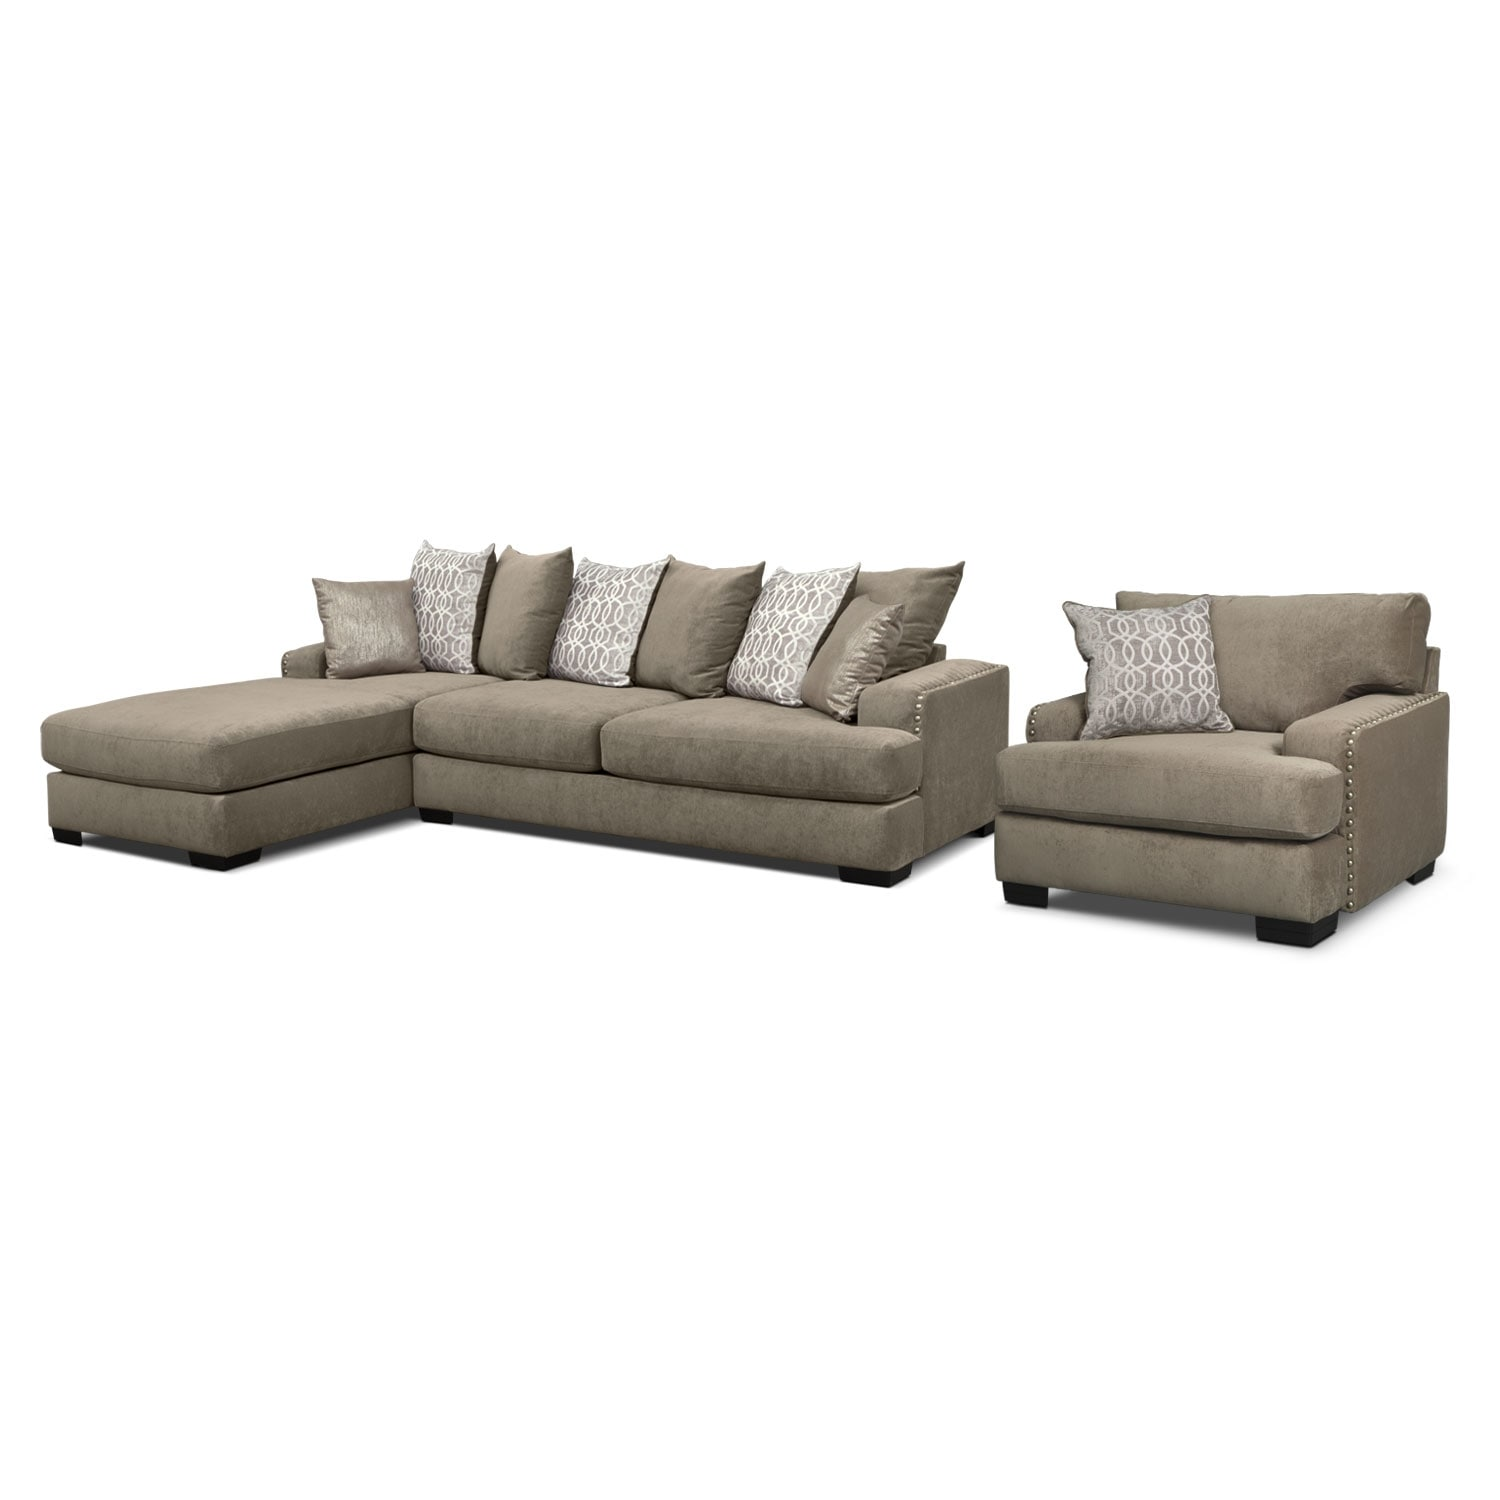 Living Room Furniture - Tempo 2-Piece Sectional with Left-Facing Chaise and Chair Set - Platinum